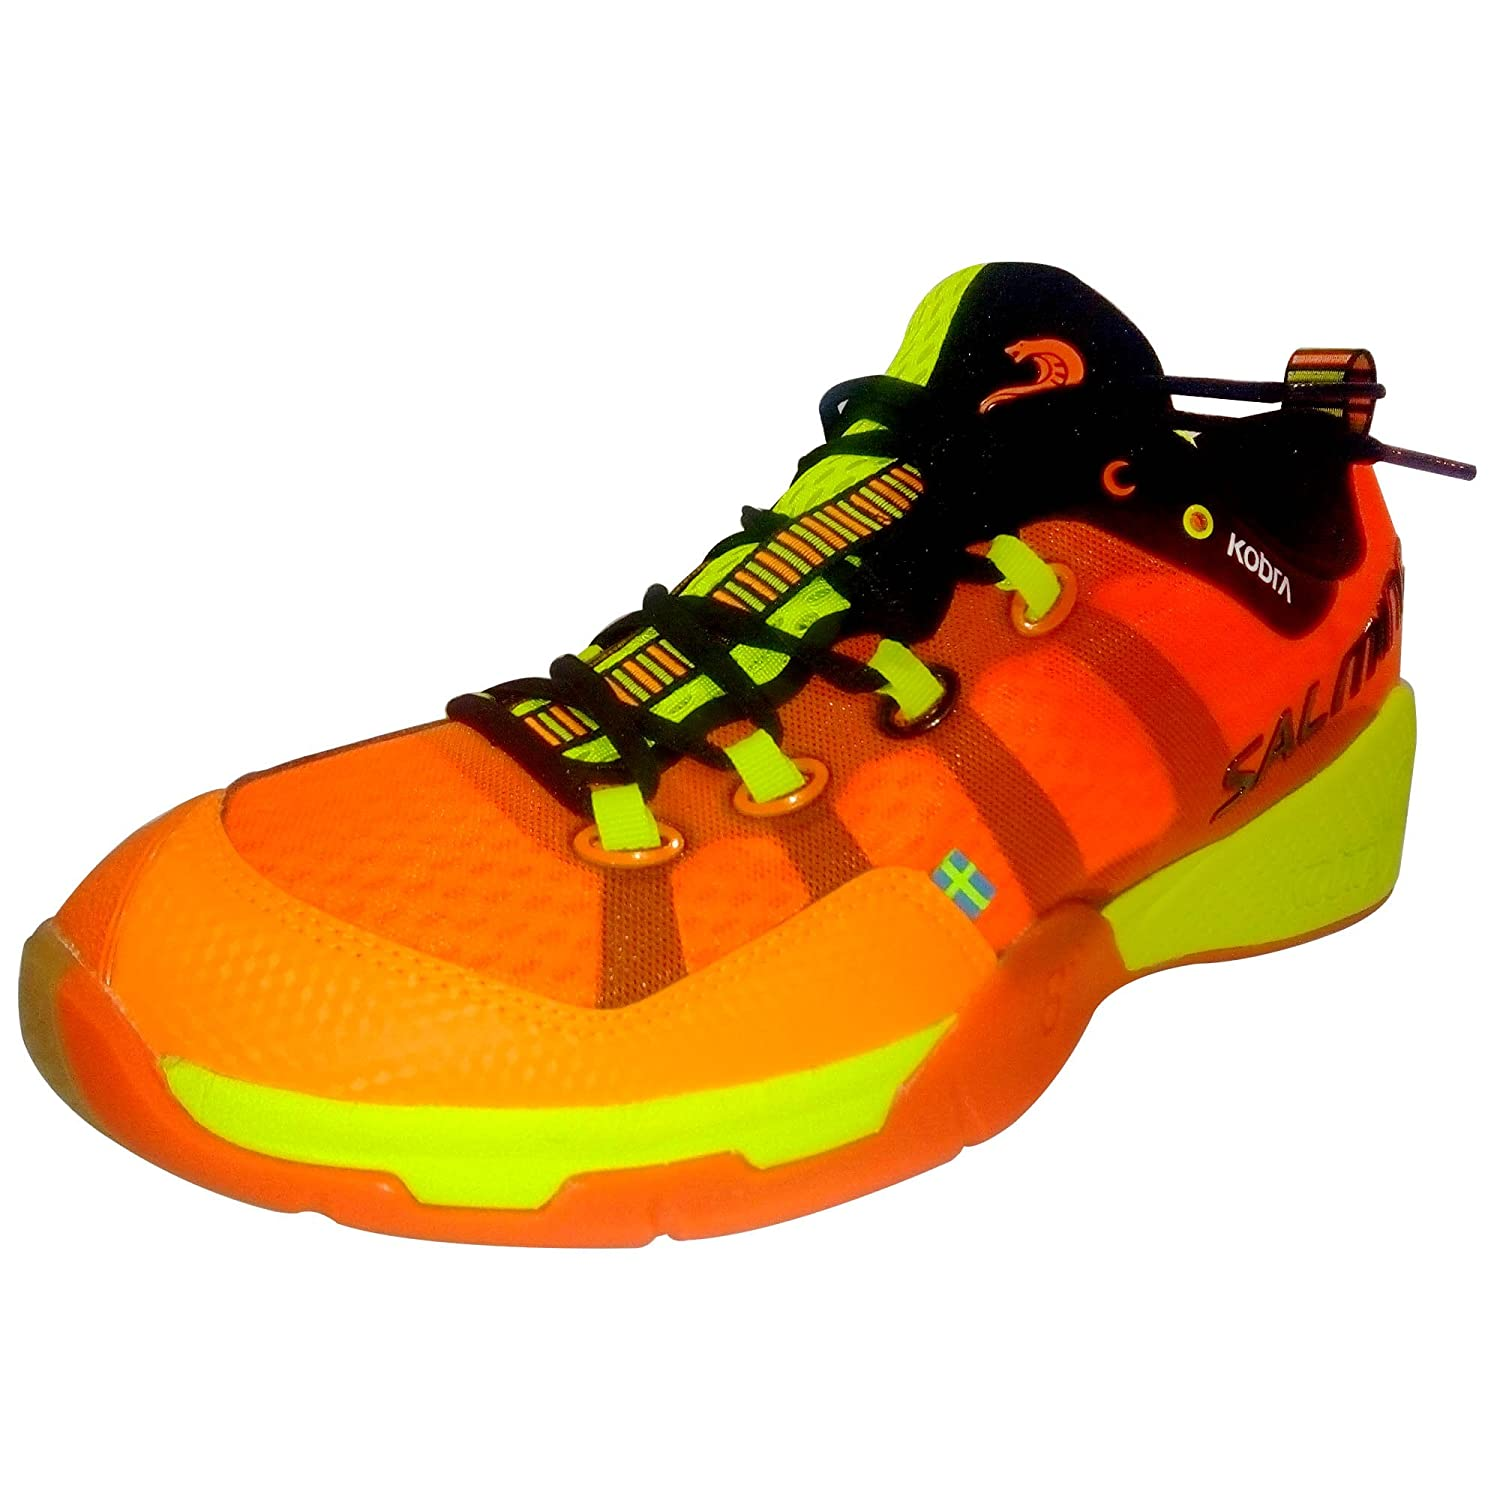 Salming Kobra Indoor Court Shoes - AW16 B01GRXBC3M 10 D(M) US|Black